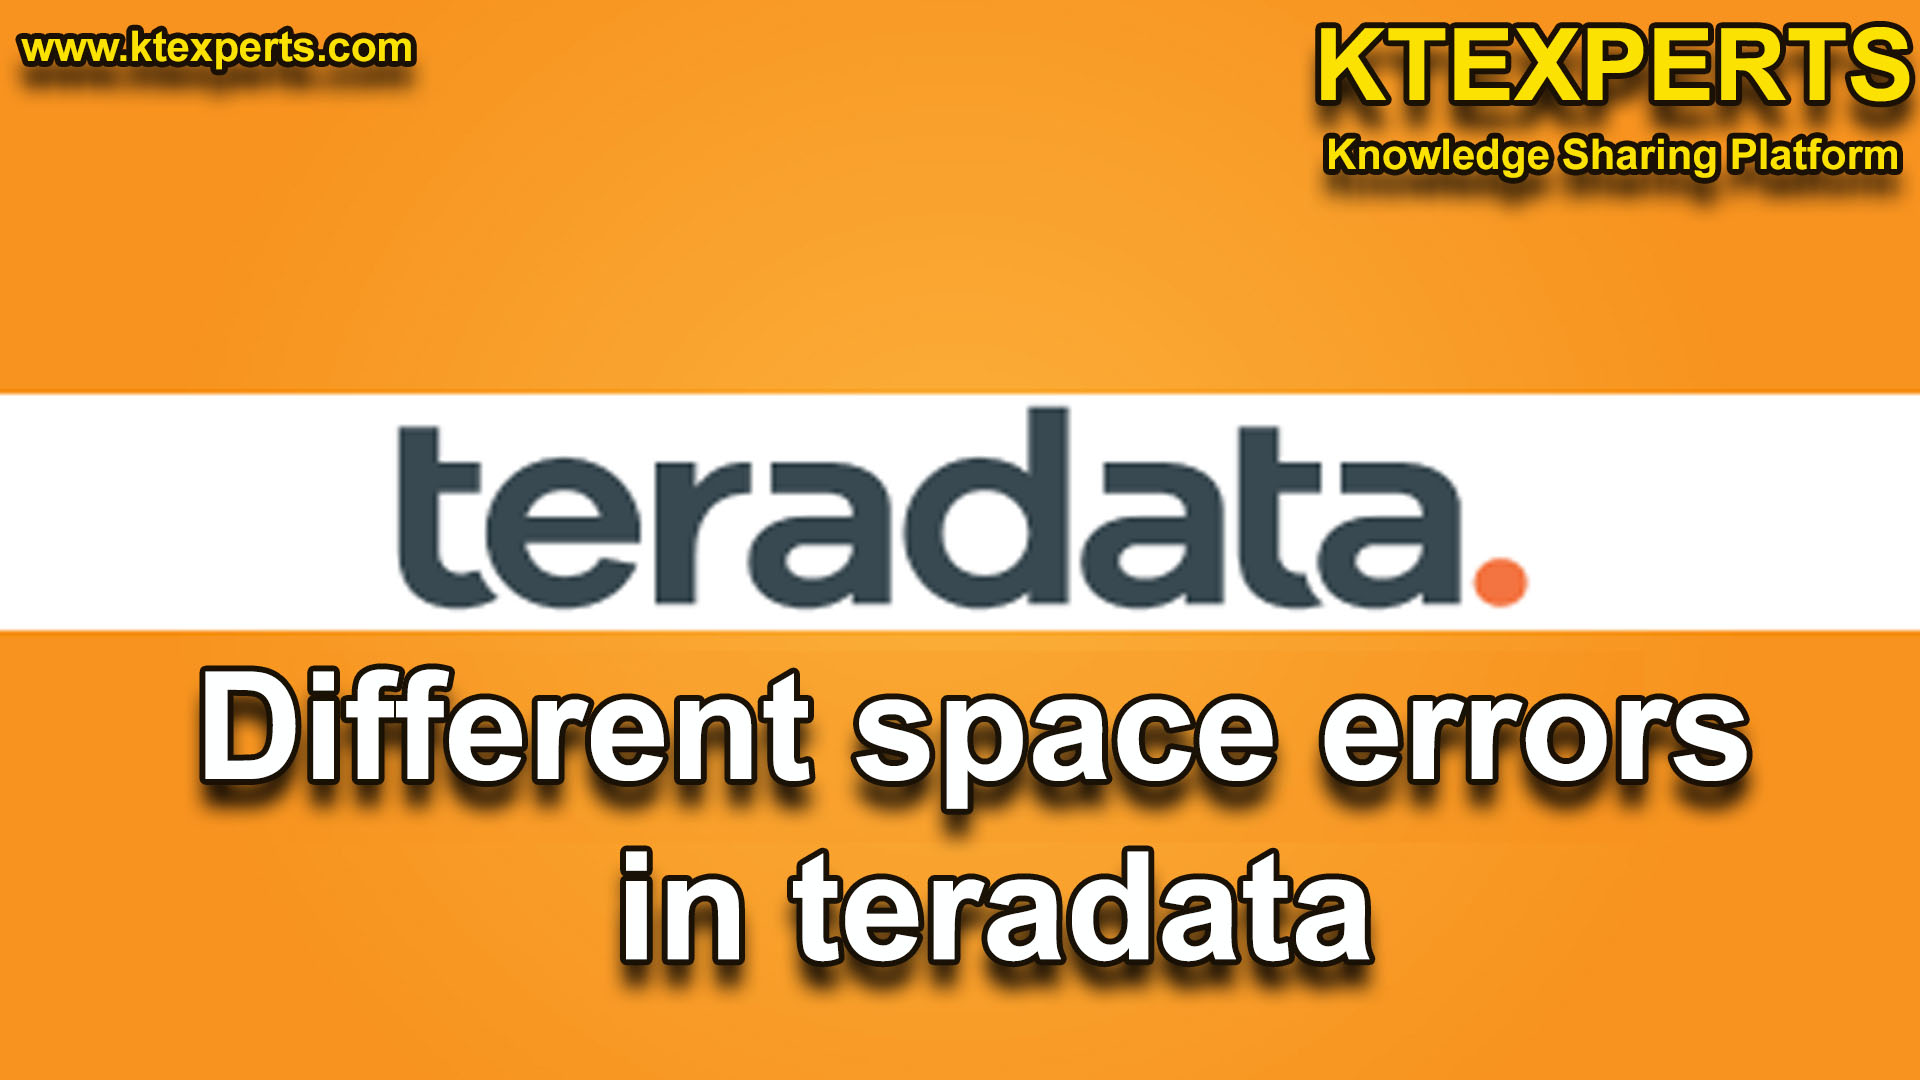 DIFFERENT SPACE ERRORS IN TERADATA